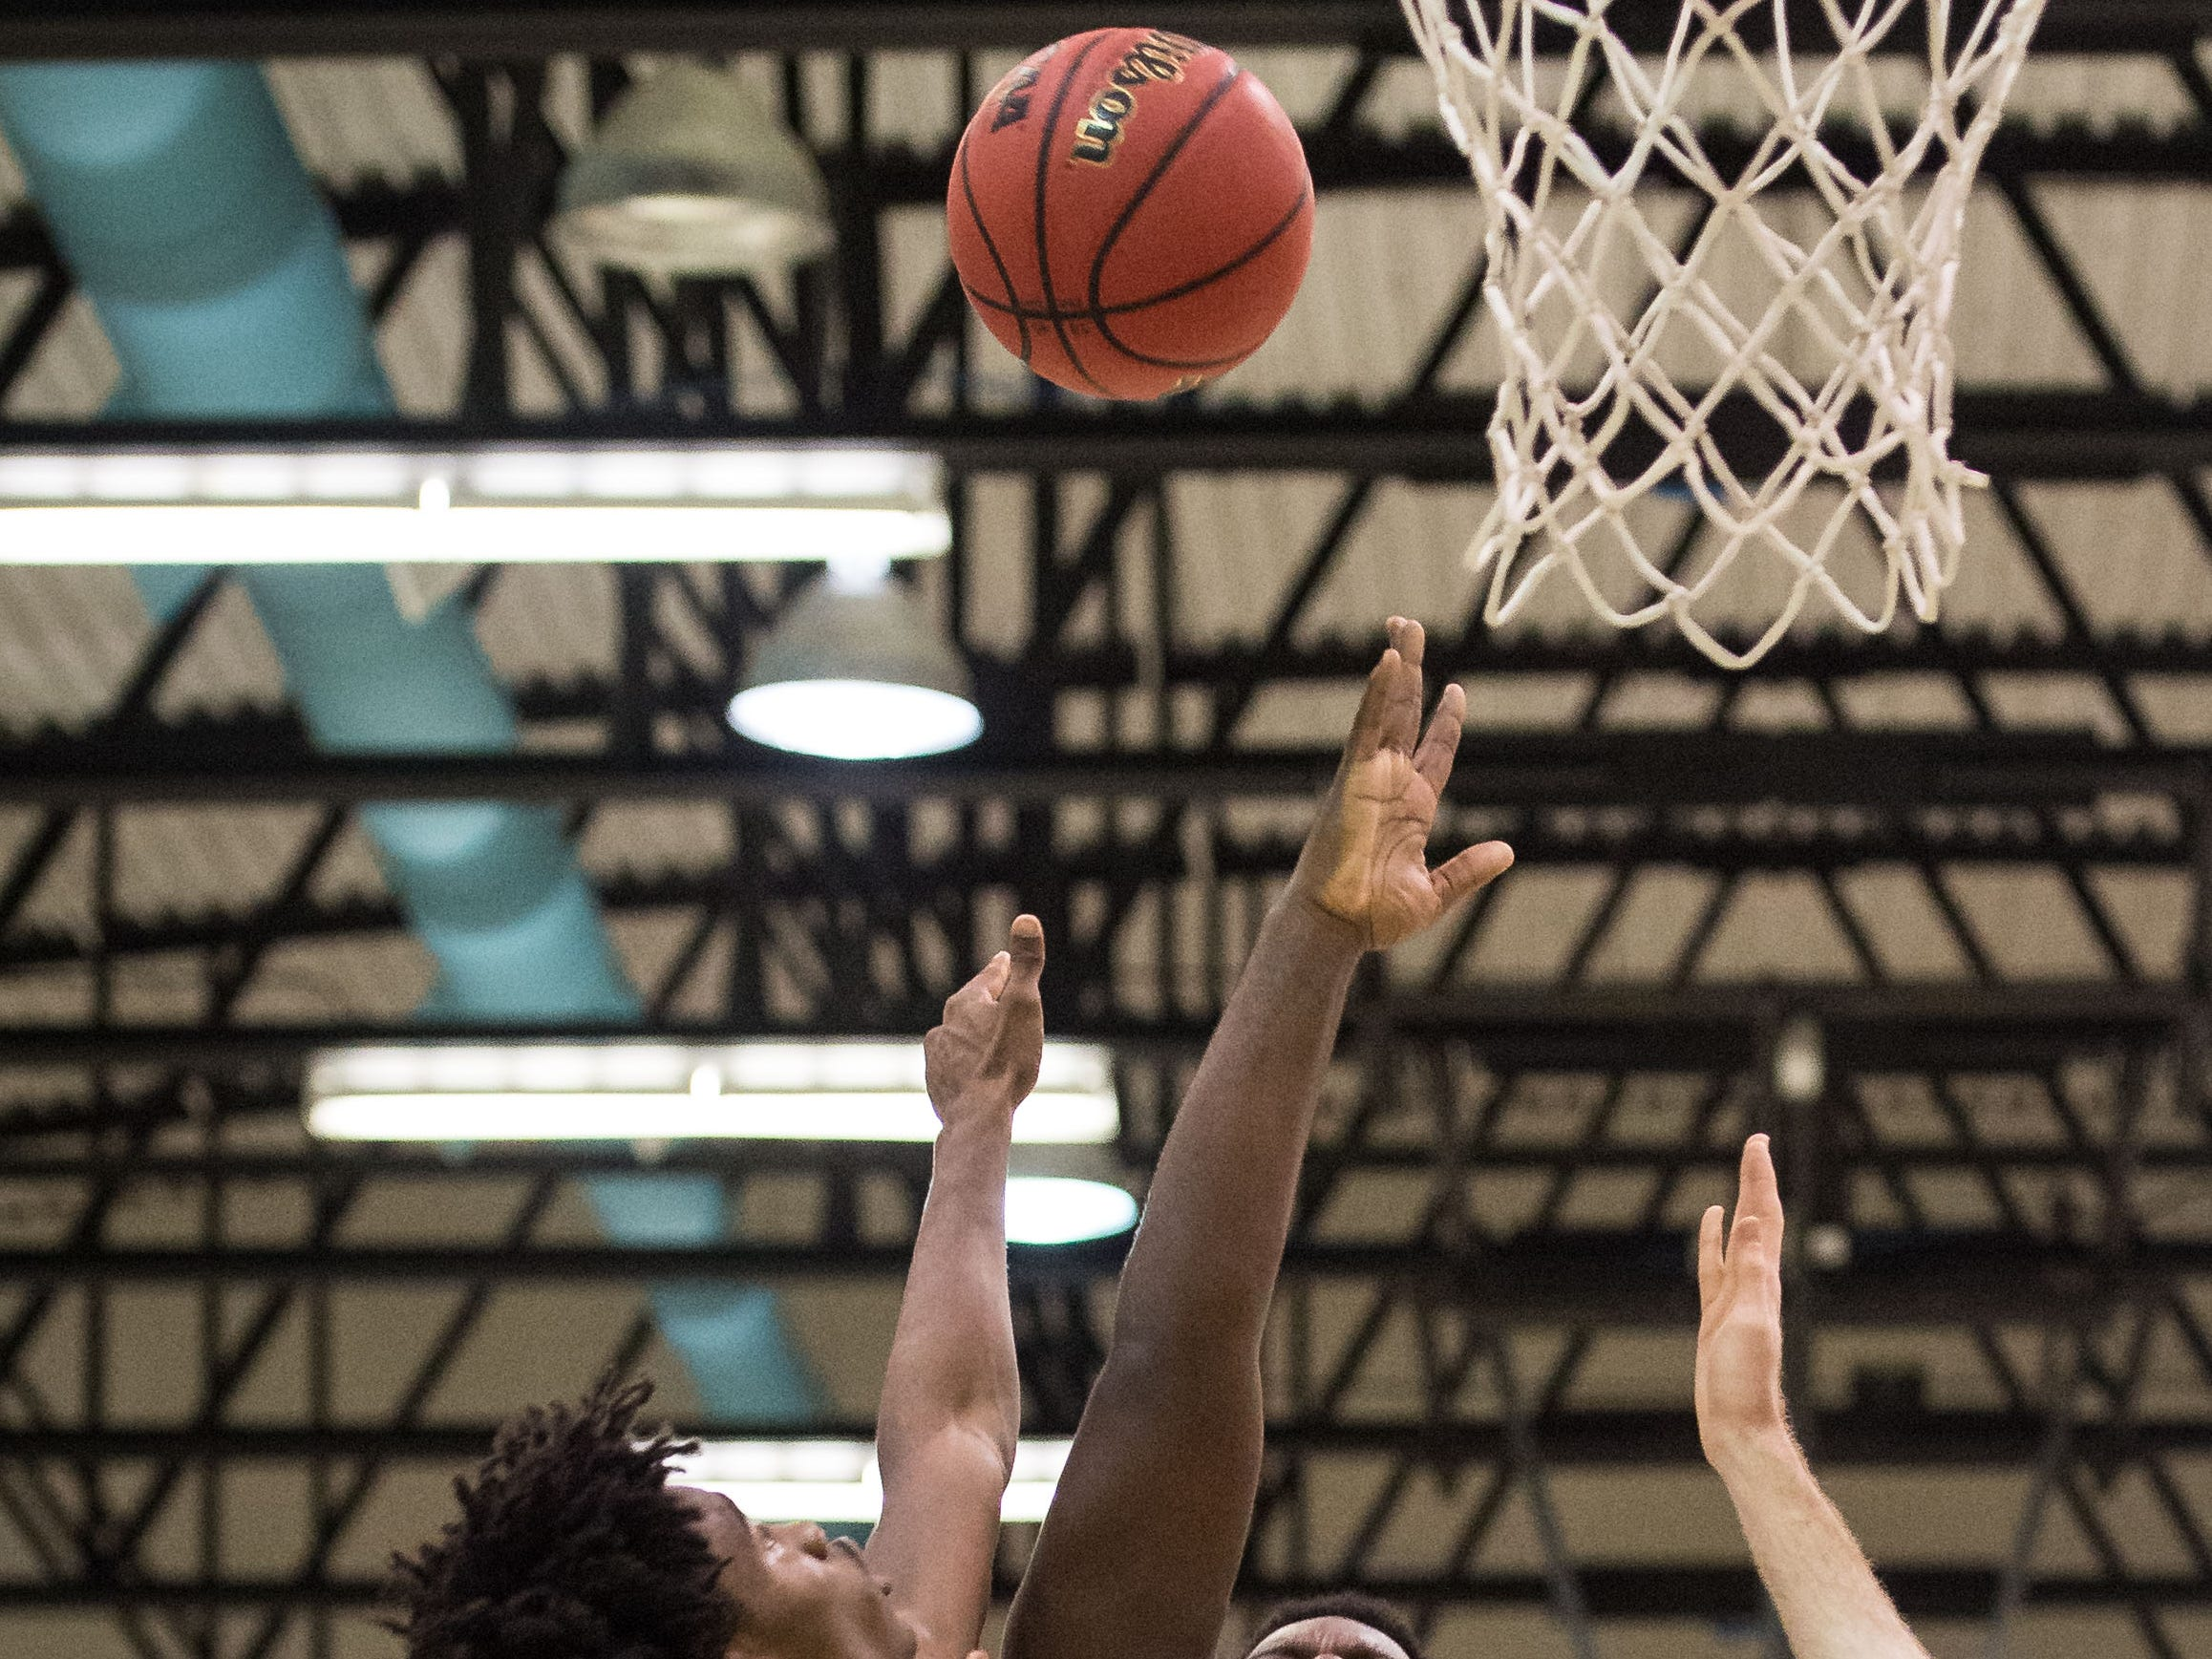 Jensen Beach's Emanuel Rogers goes up for the shot and is fouled by Treasure Coast's Nemuel Robinson during the fourth period of the high school boys basketball game Tuesday, Dec. 4, 2018, at Jensen Beach High School.